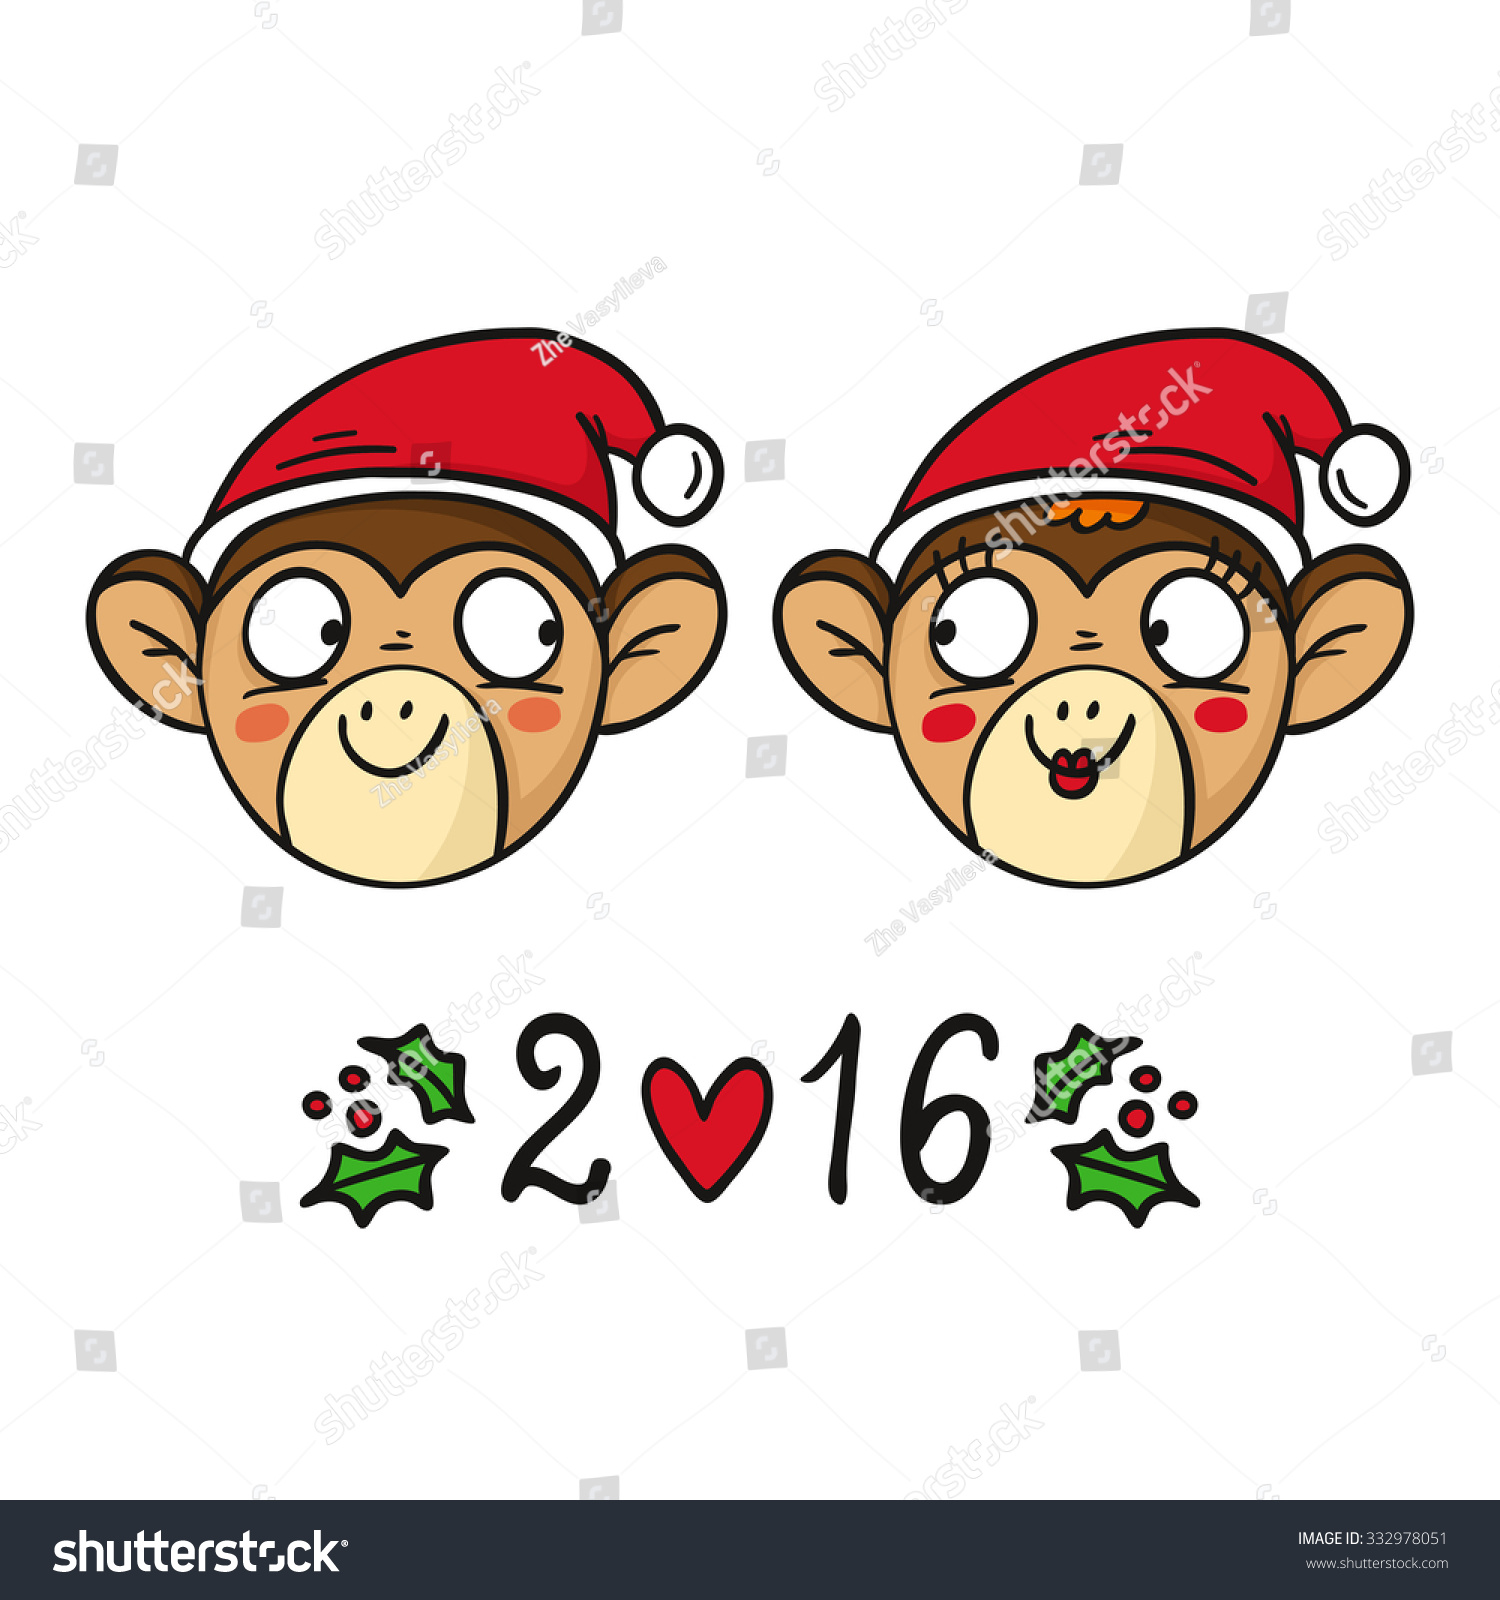 monkey couple in santas hats chinese new year 2016 symbol cute vector animal characters - Chinese New Year 2016 Animal